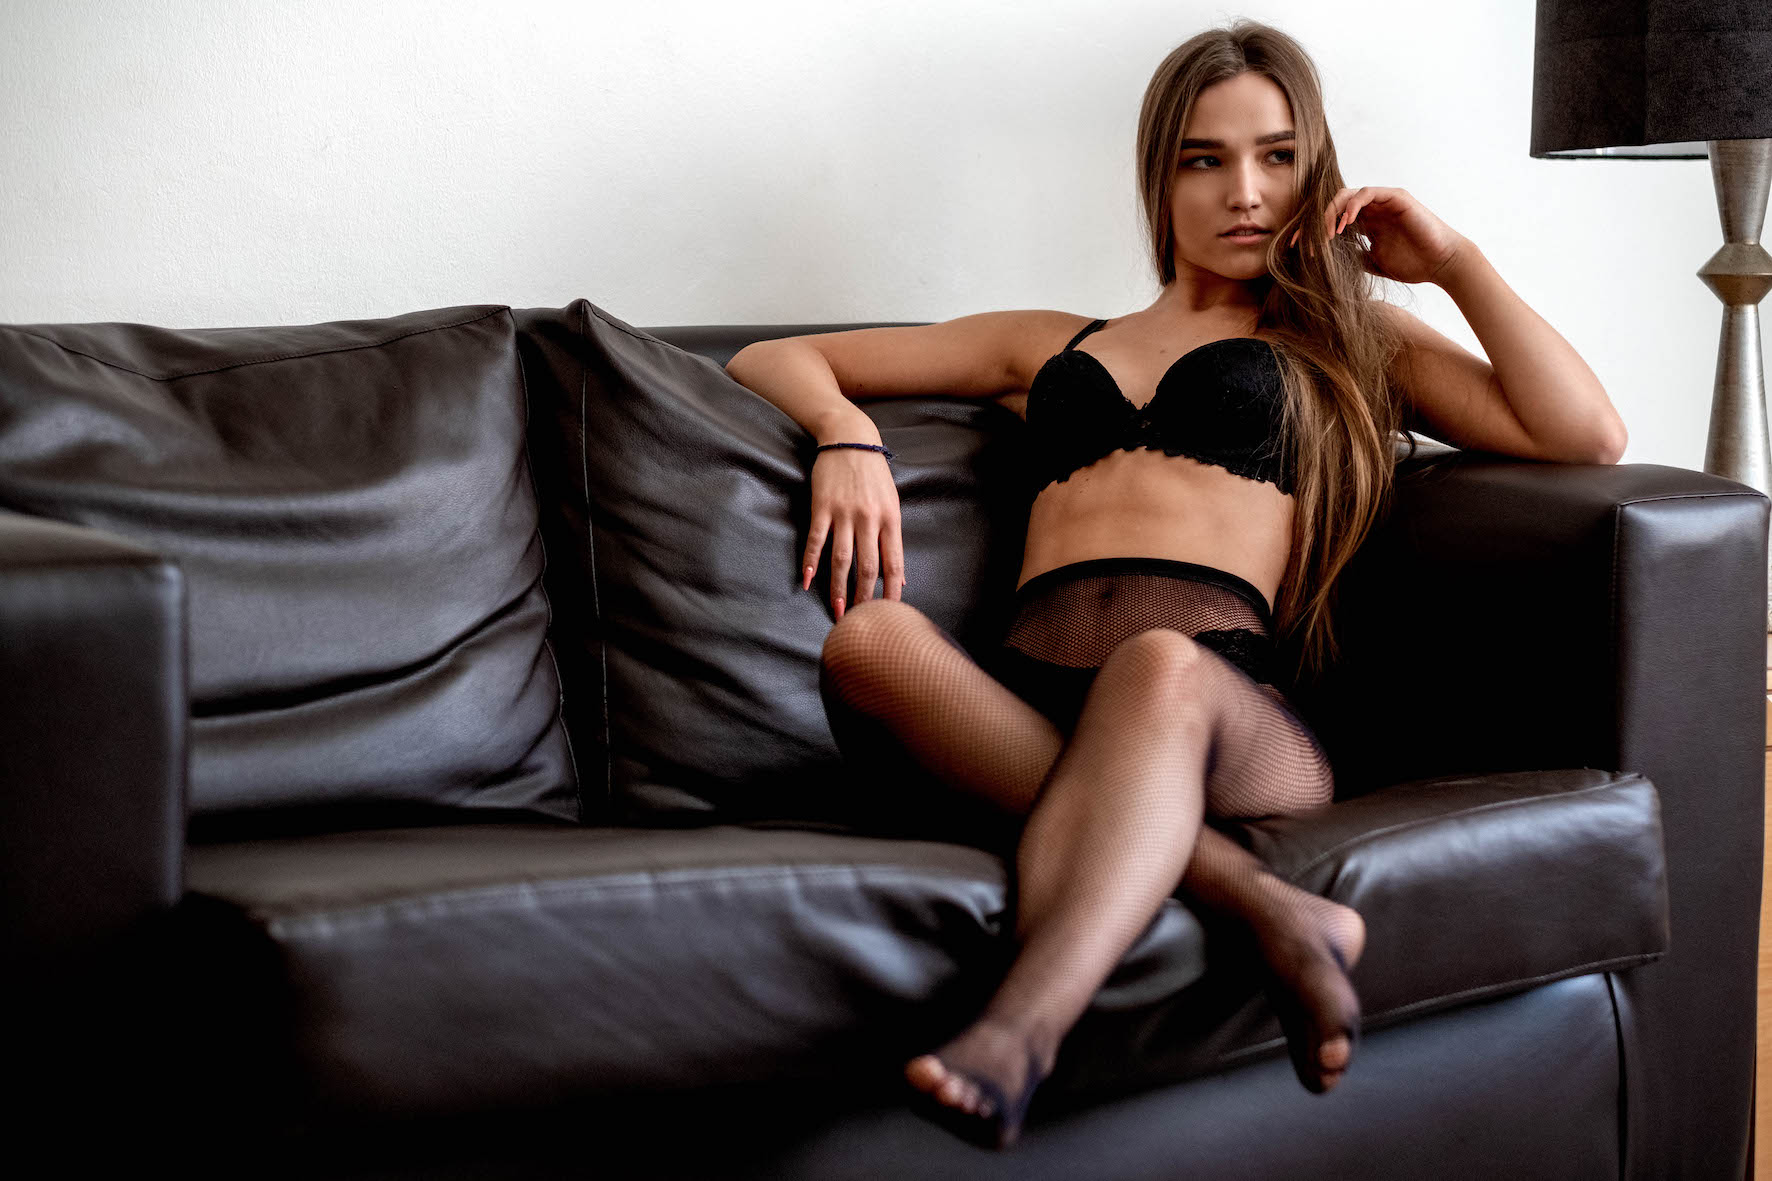 Meet Belle Westley as our LW Babe of the Week